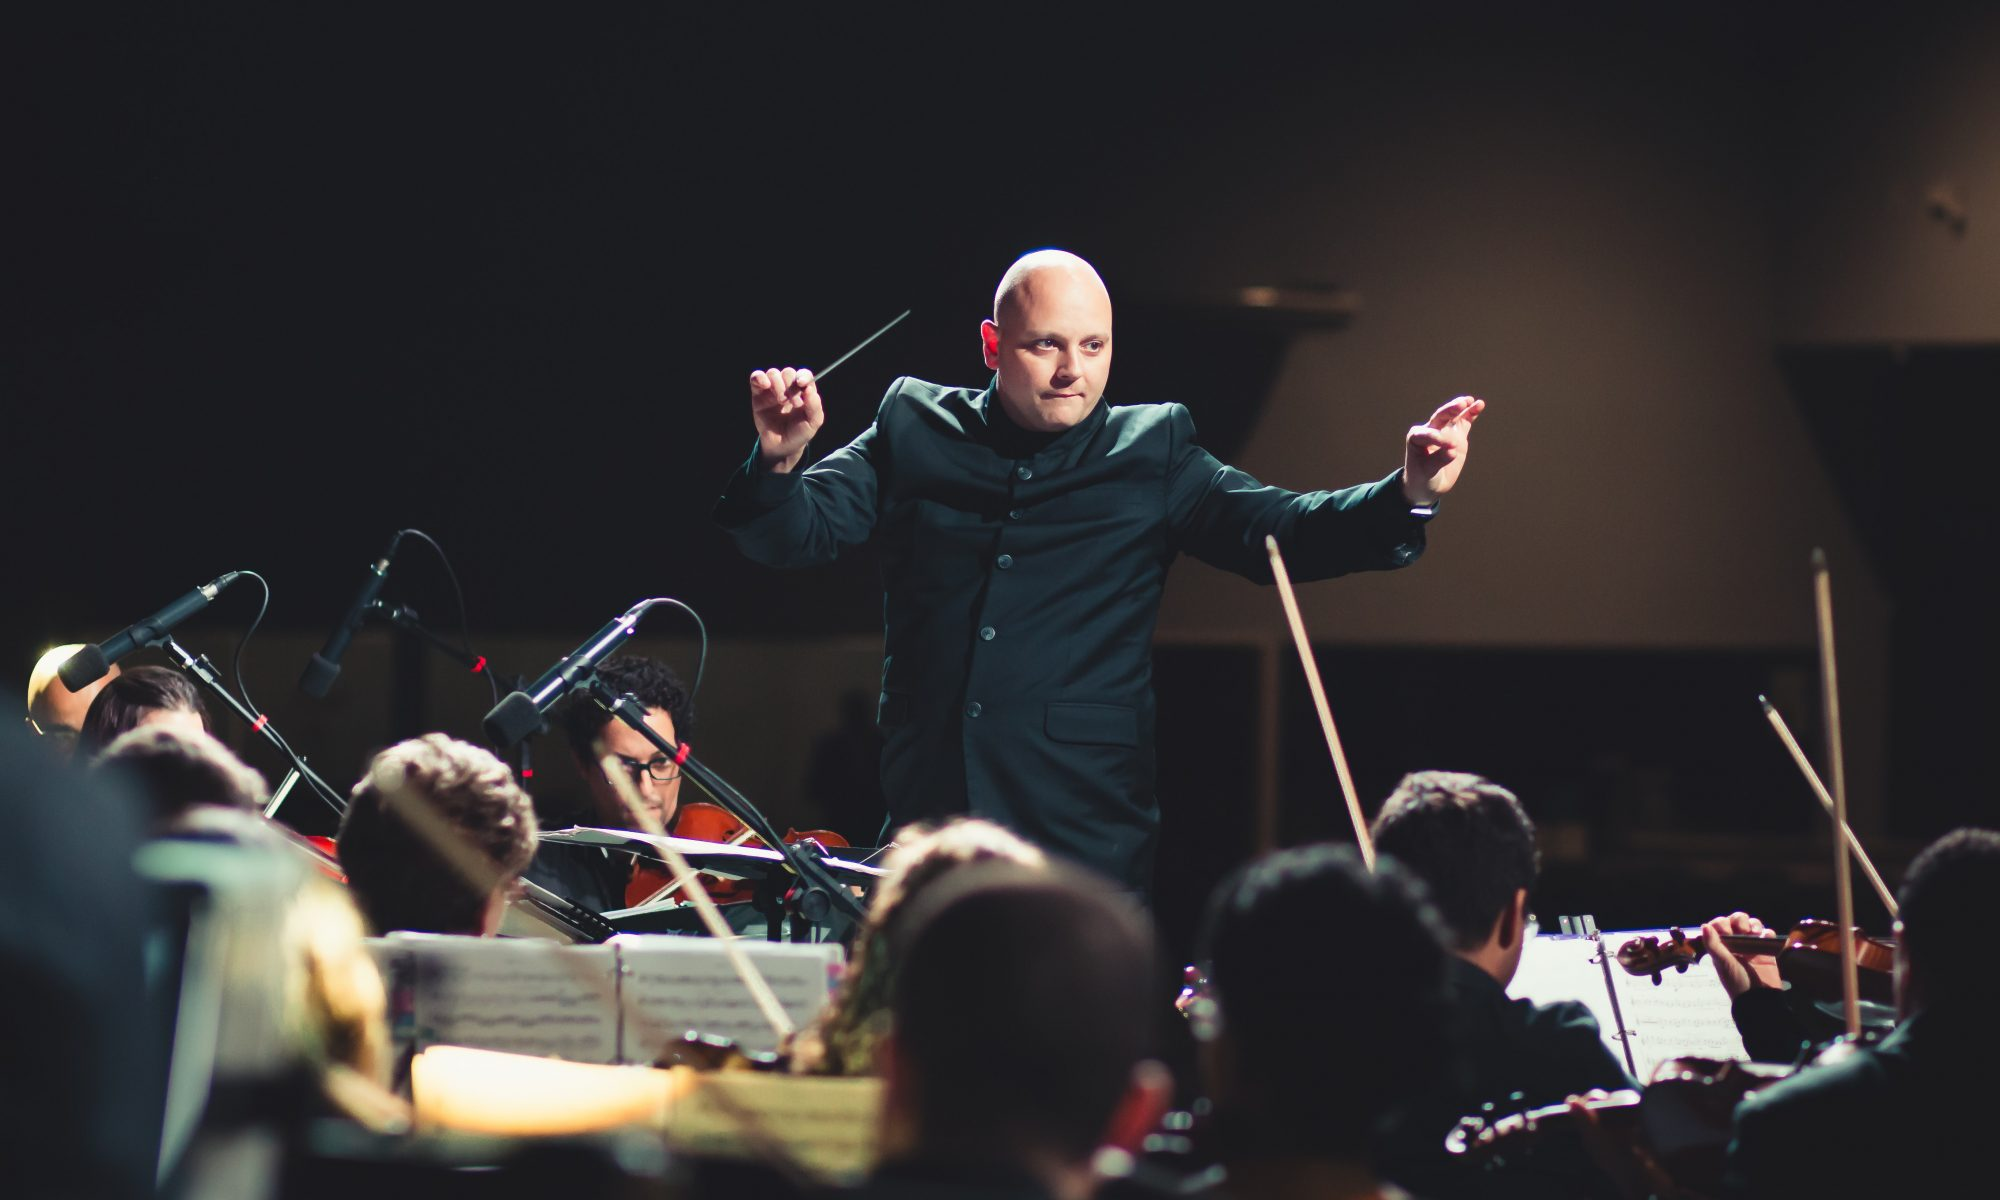 Orchestra Conductor Performance